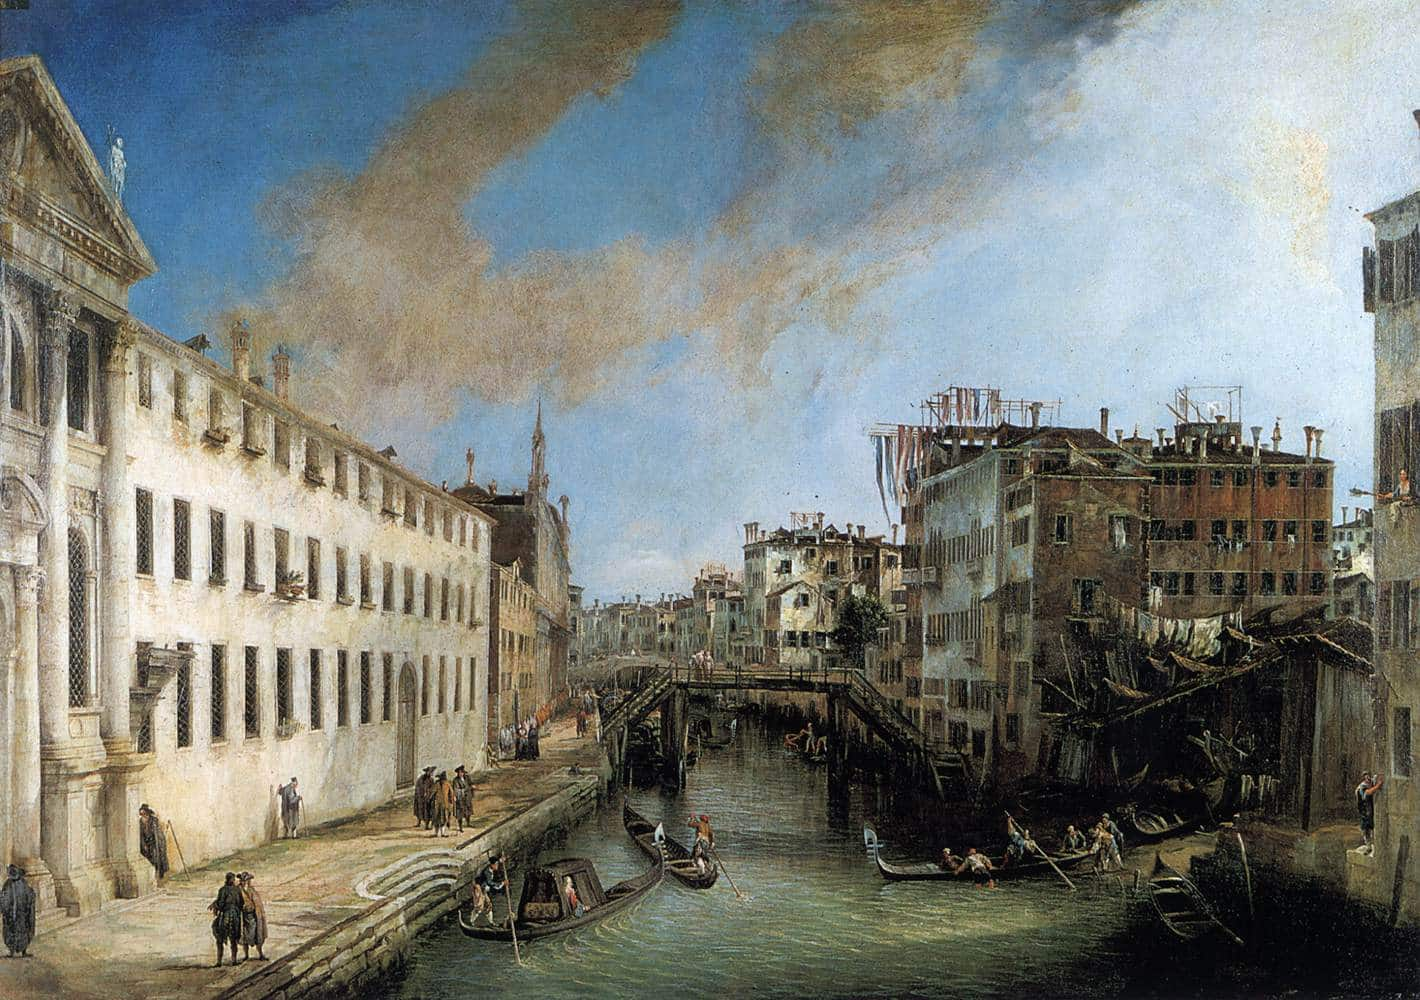 Venice in the past can be seen in Canaletto's paintings